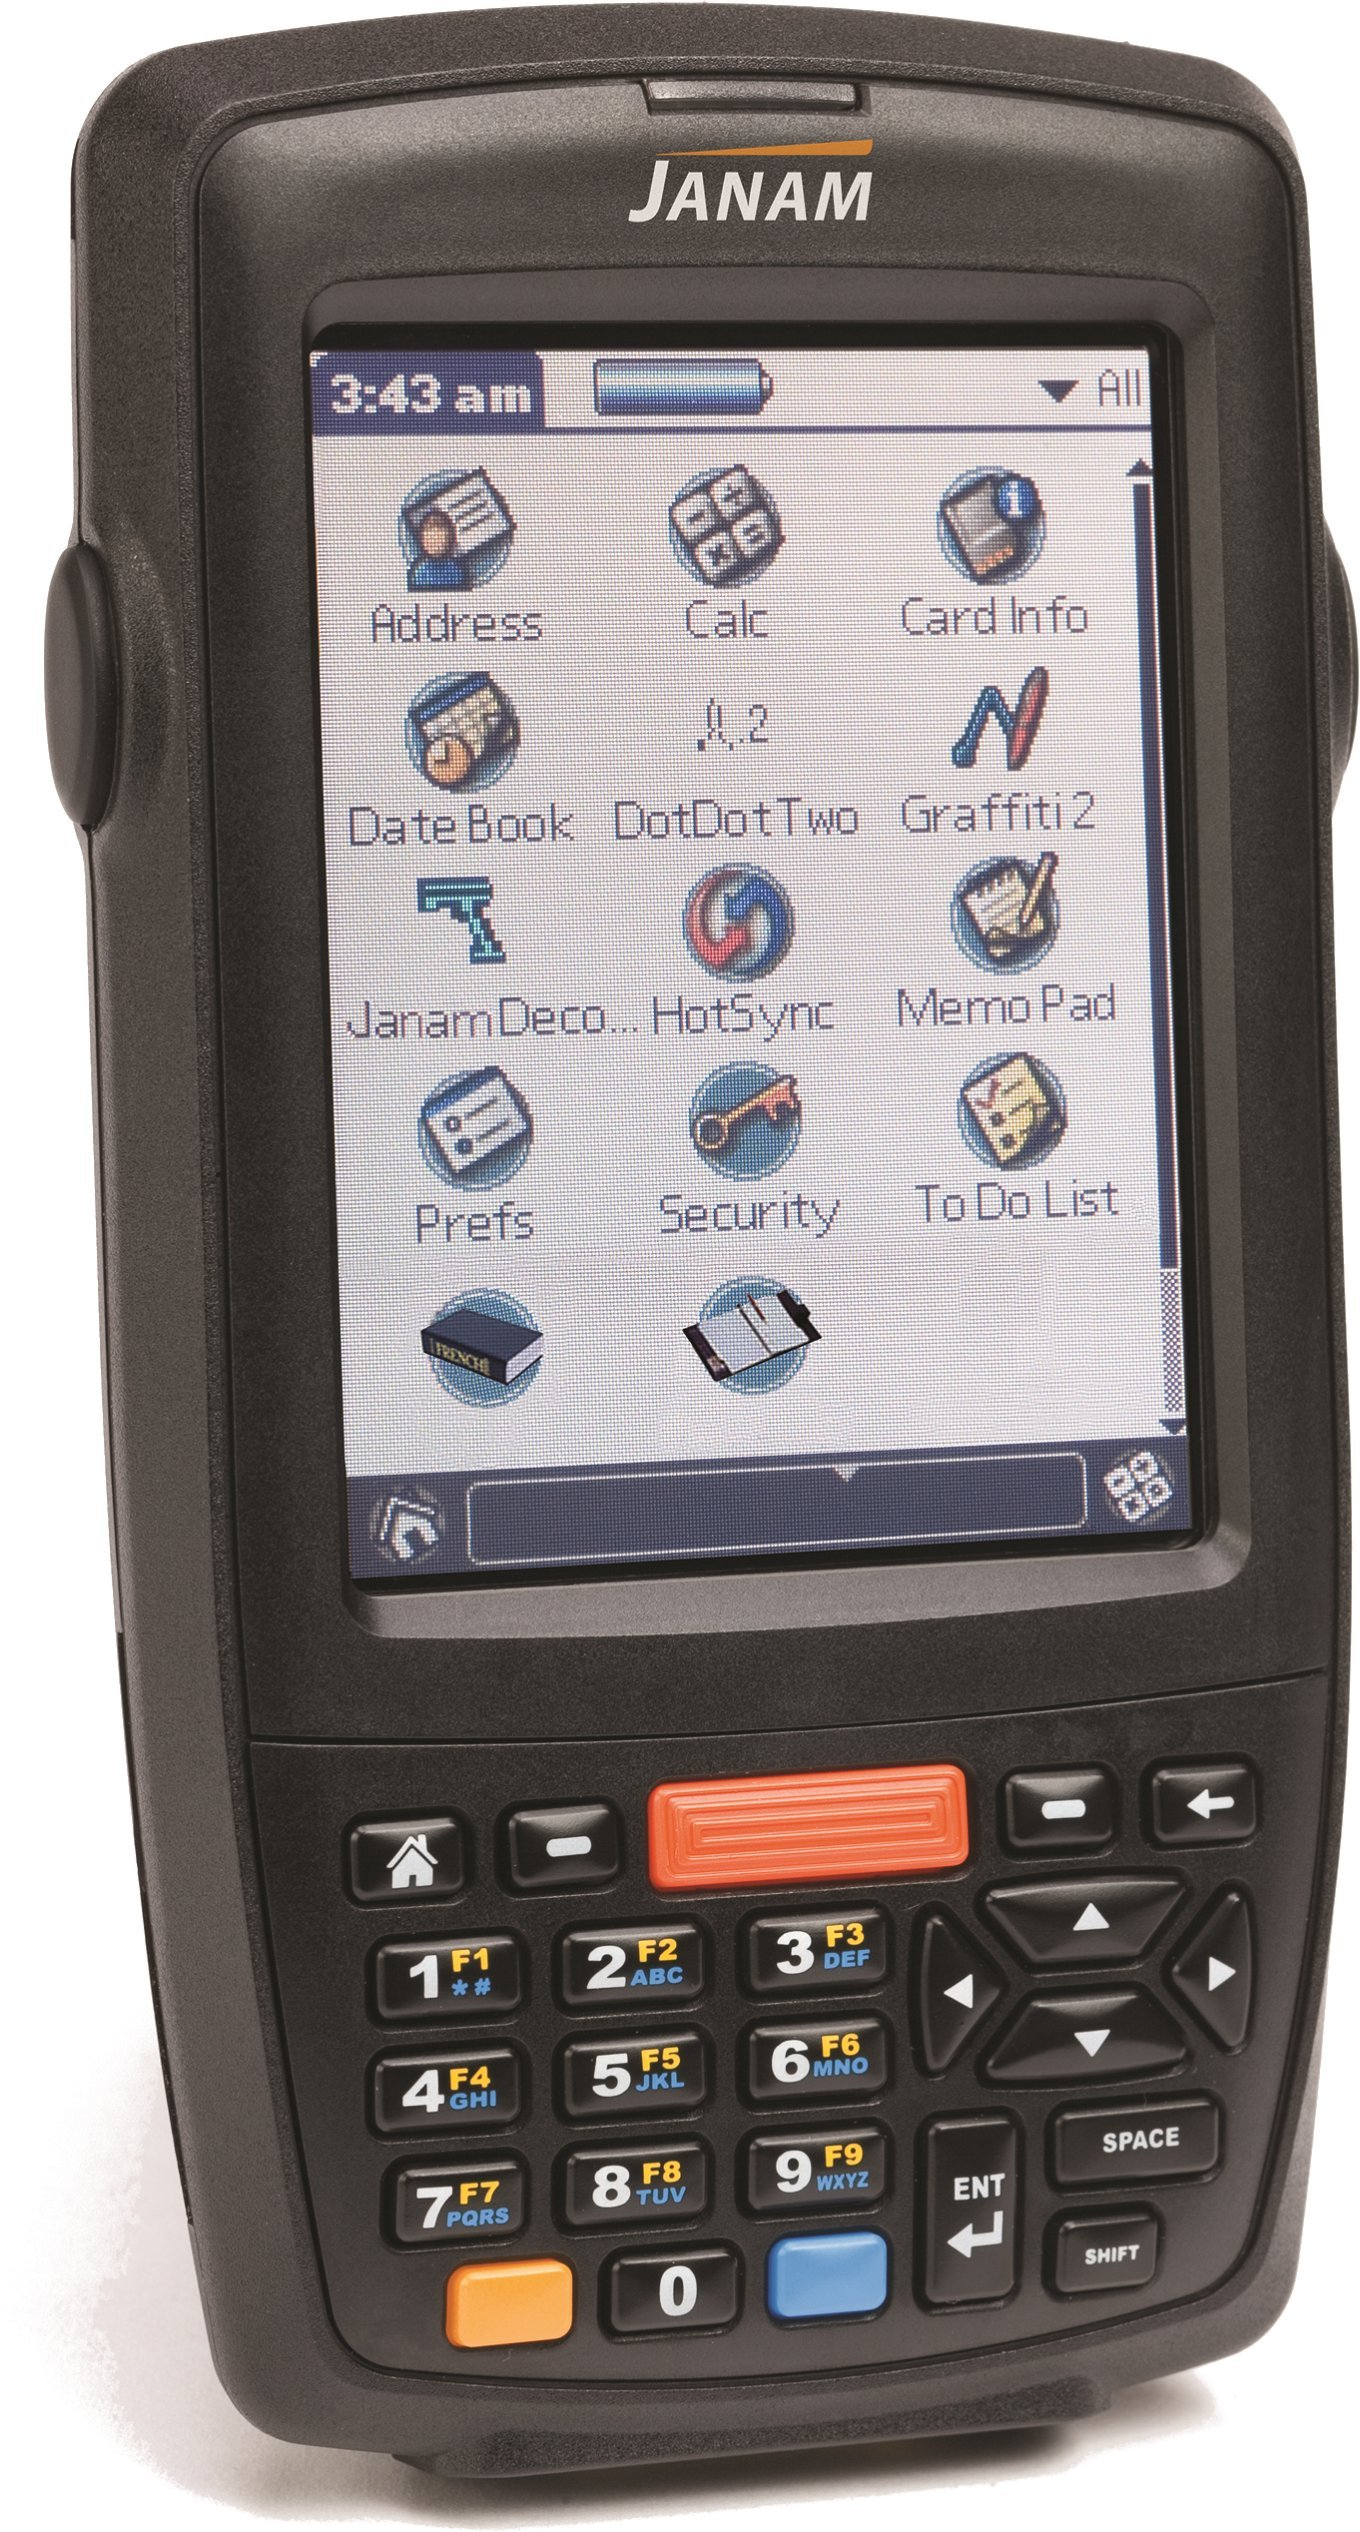 Janam XM66N-1NXFBV00 Series XM66 Handheld Computing Devices, Rugged PDA, BT, Win Mobile 6.1, 256 MB/256 MB, 2D Imager, Numeric Keypad, 3.5'' Color Display, Micro SD Slot